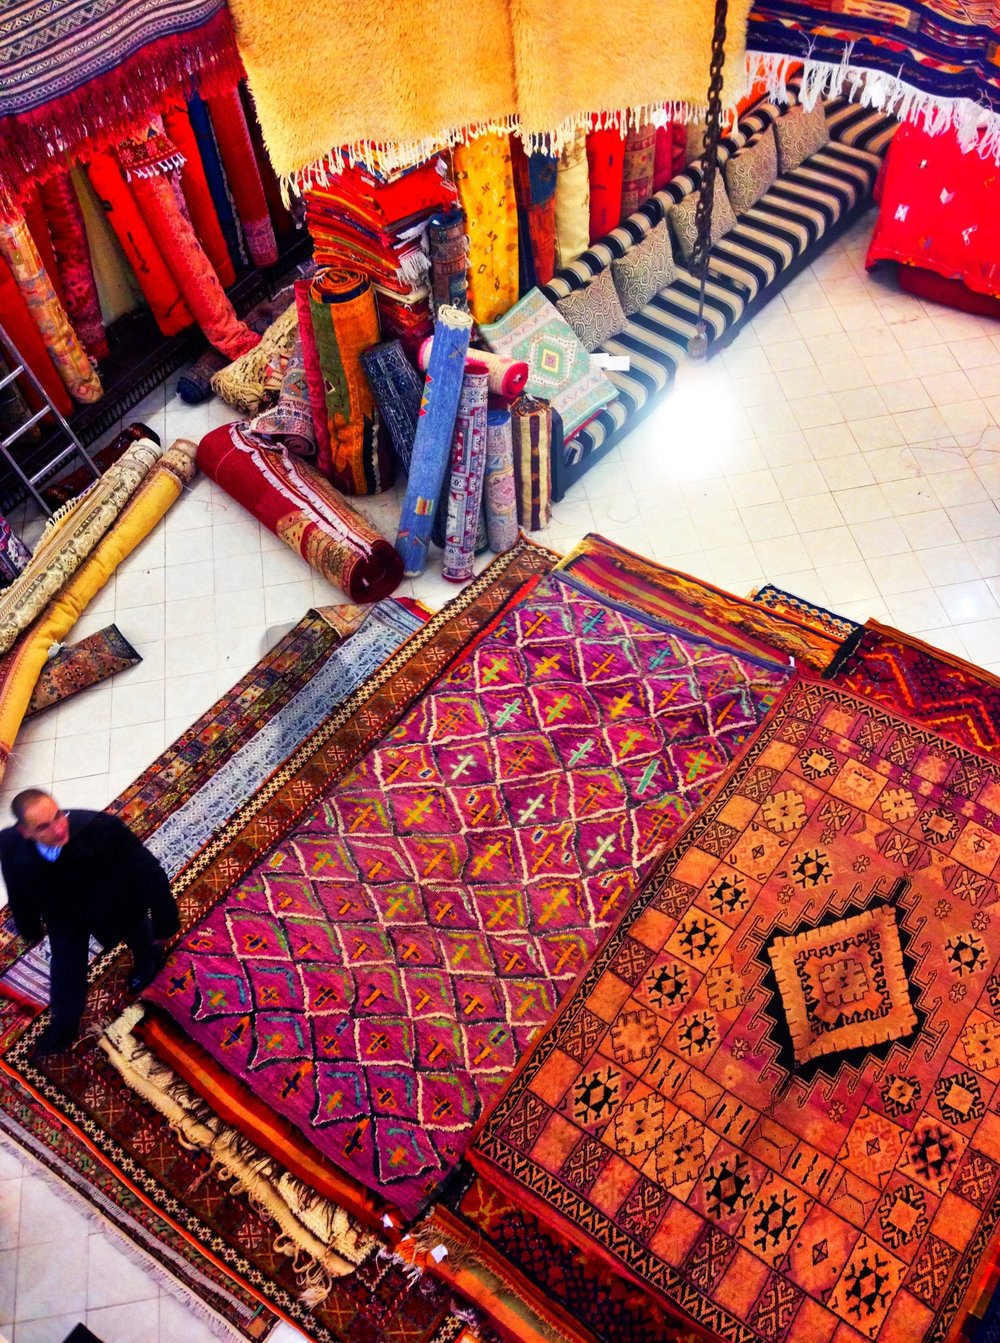 Rug shopping in Marrakesh, Morocco